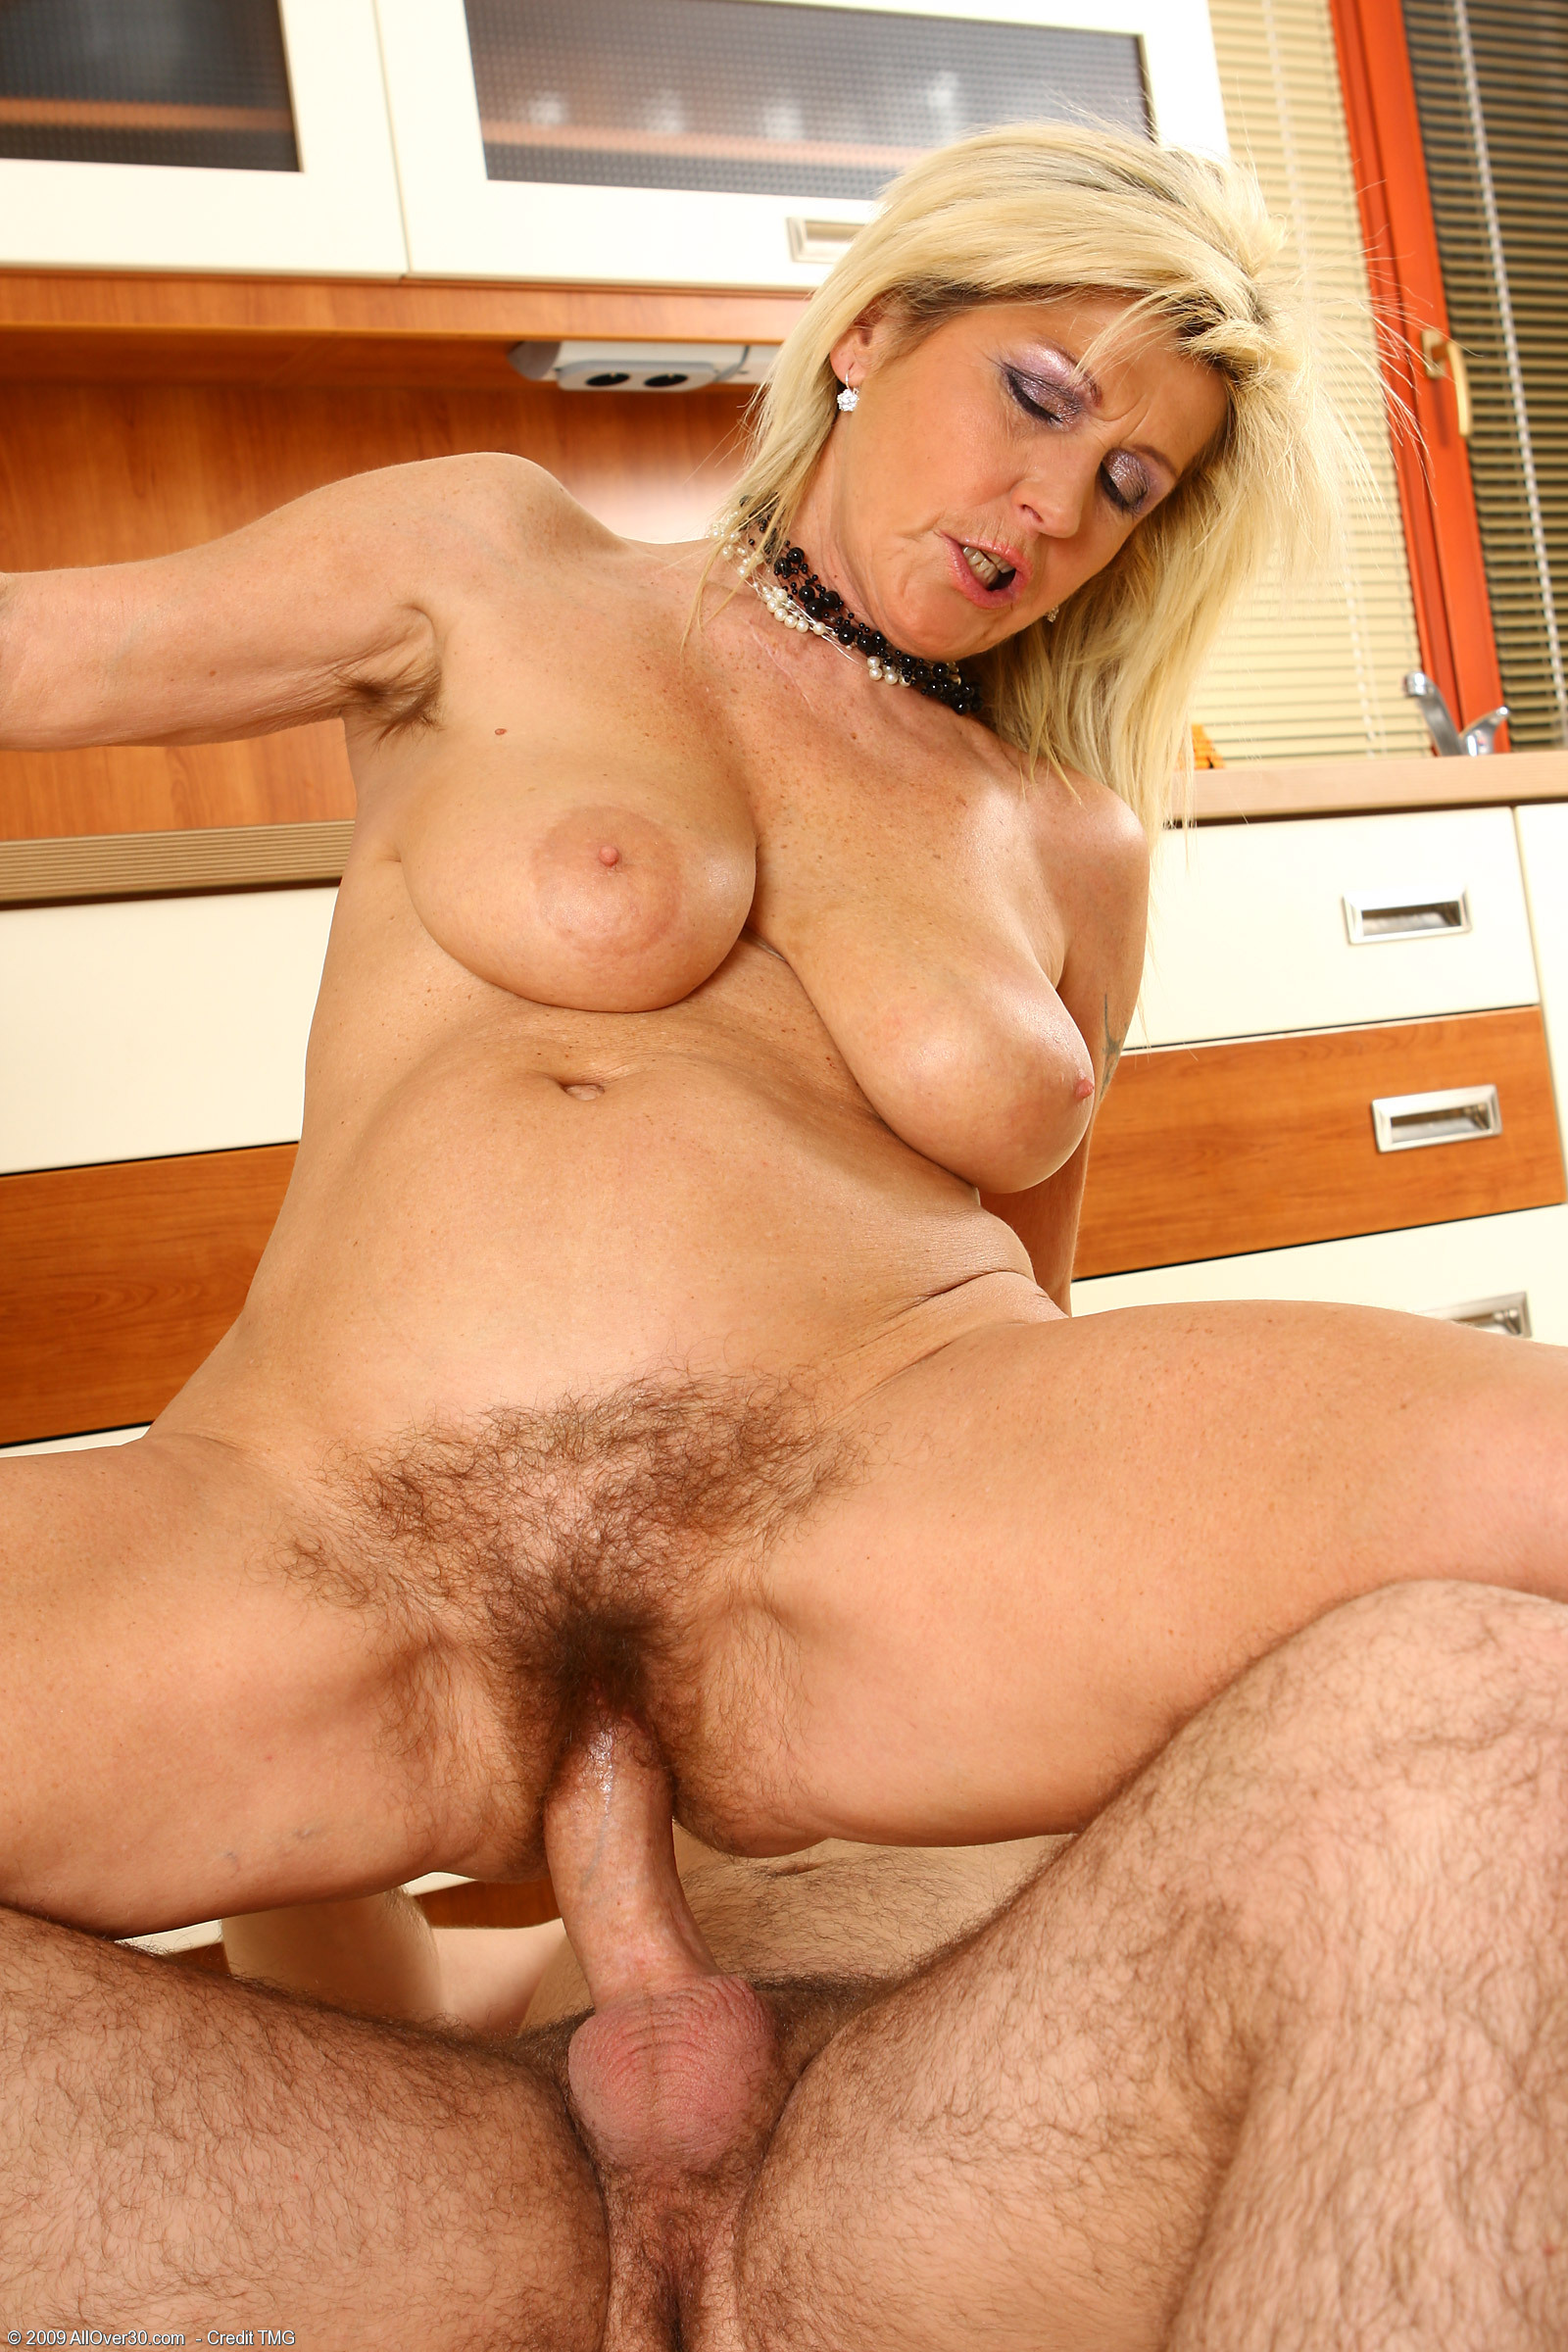 52 year old berna - exclusive milf pictures from allover30